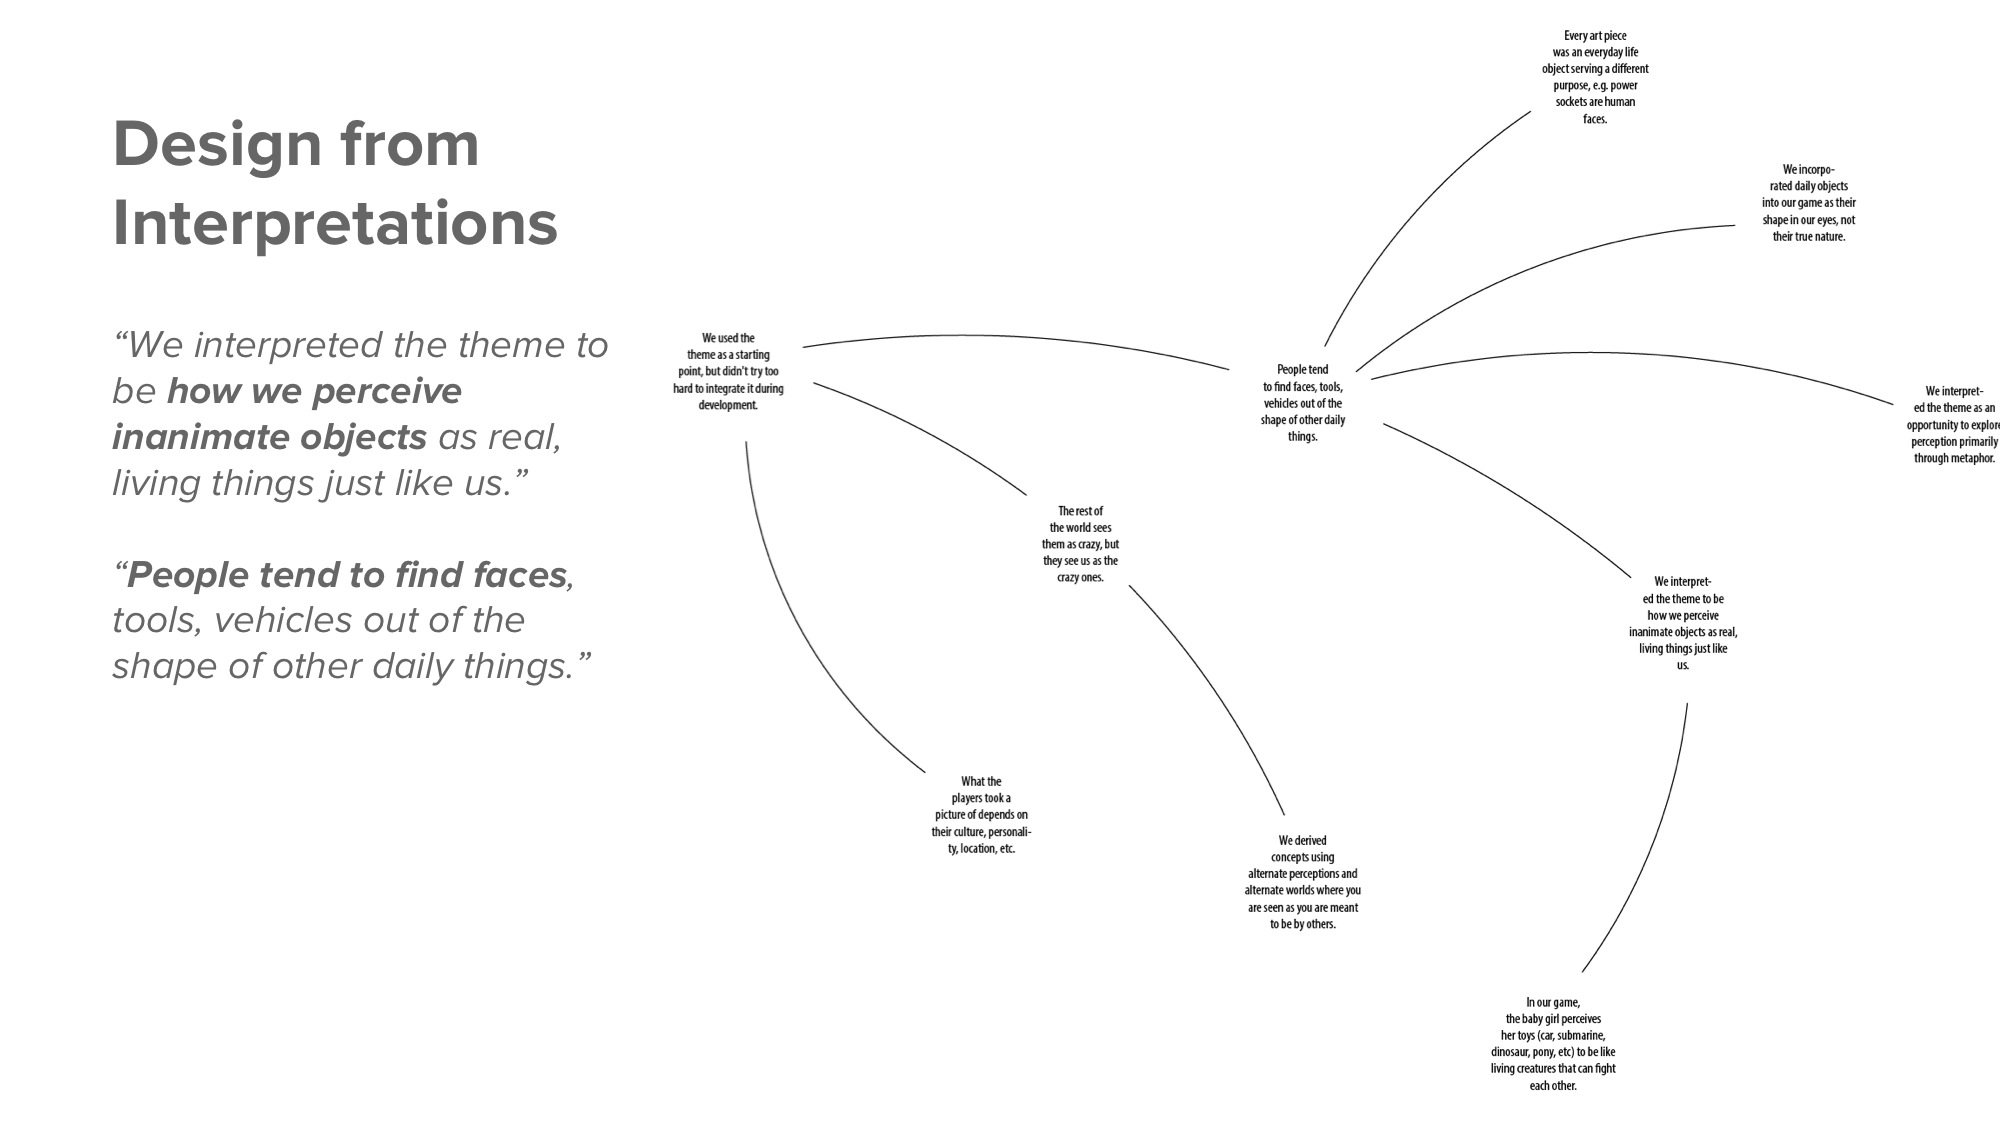 2014.10.17 - -How Are Ideas Connected- Drawing the Design Process of Idea Networks in Global Game Jam- - Meaningful Play 2014 17.jpeg